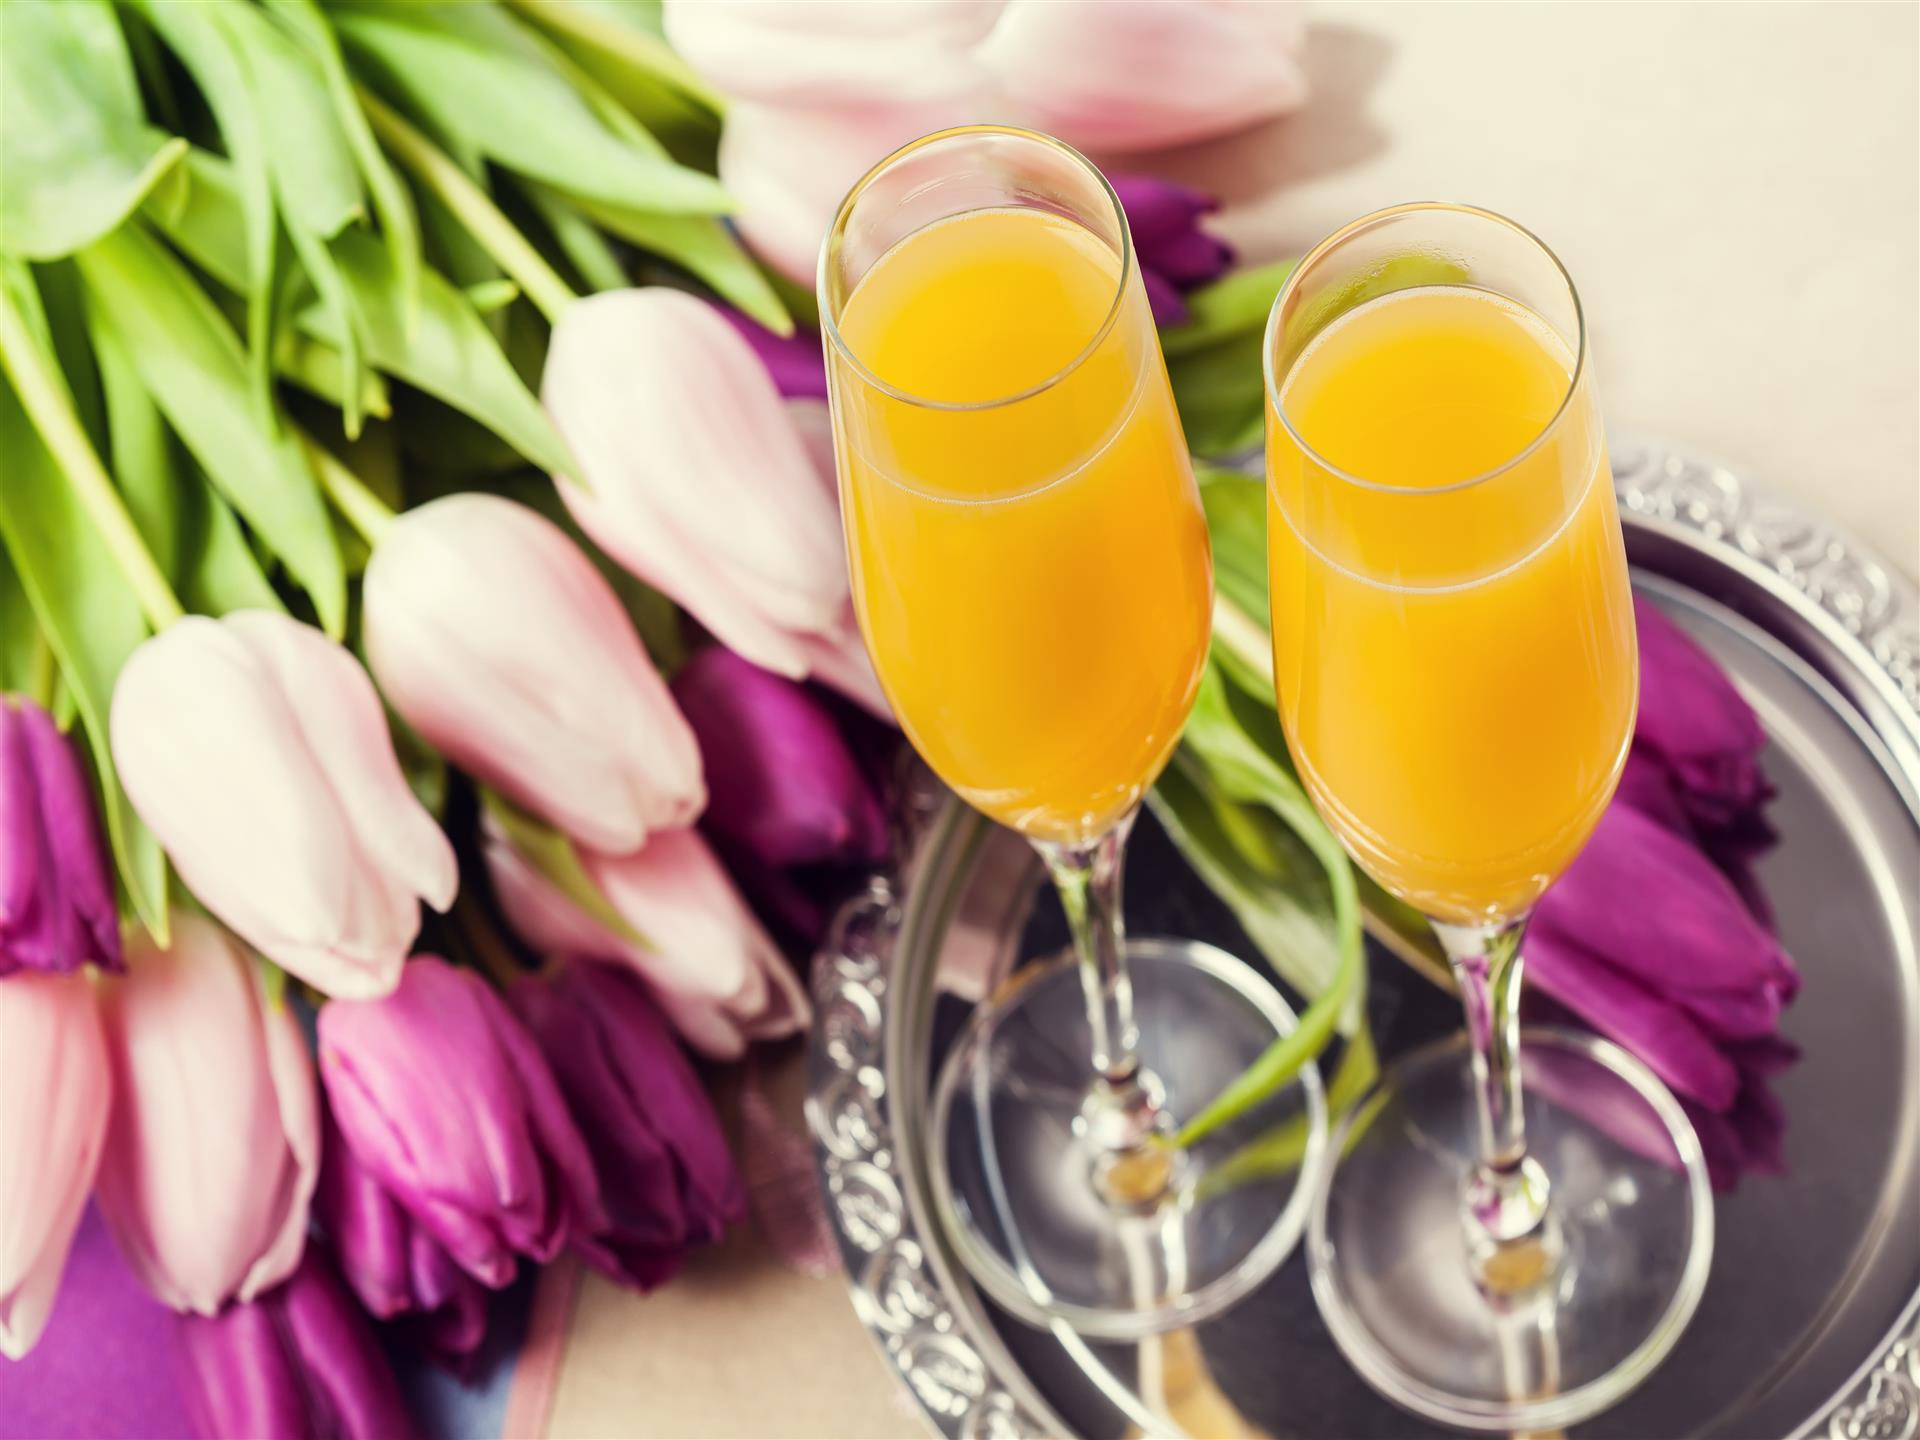 Two mimosas on serving tray next to flowers